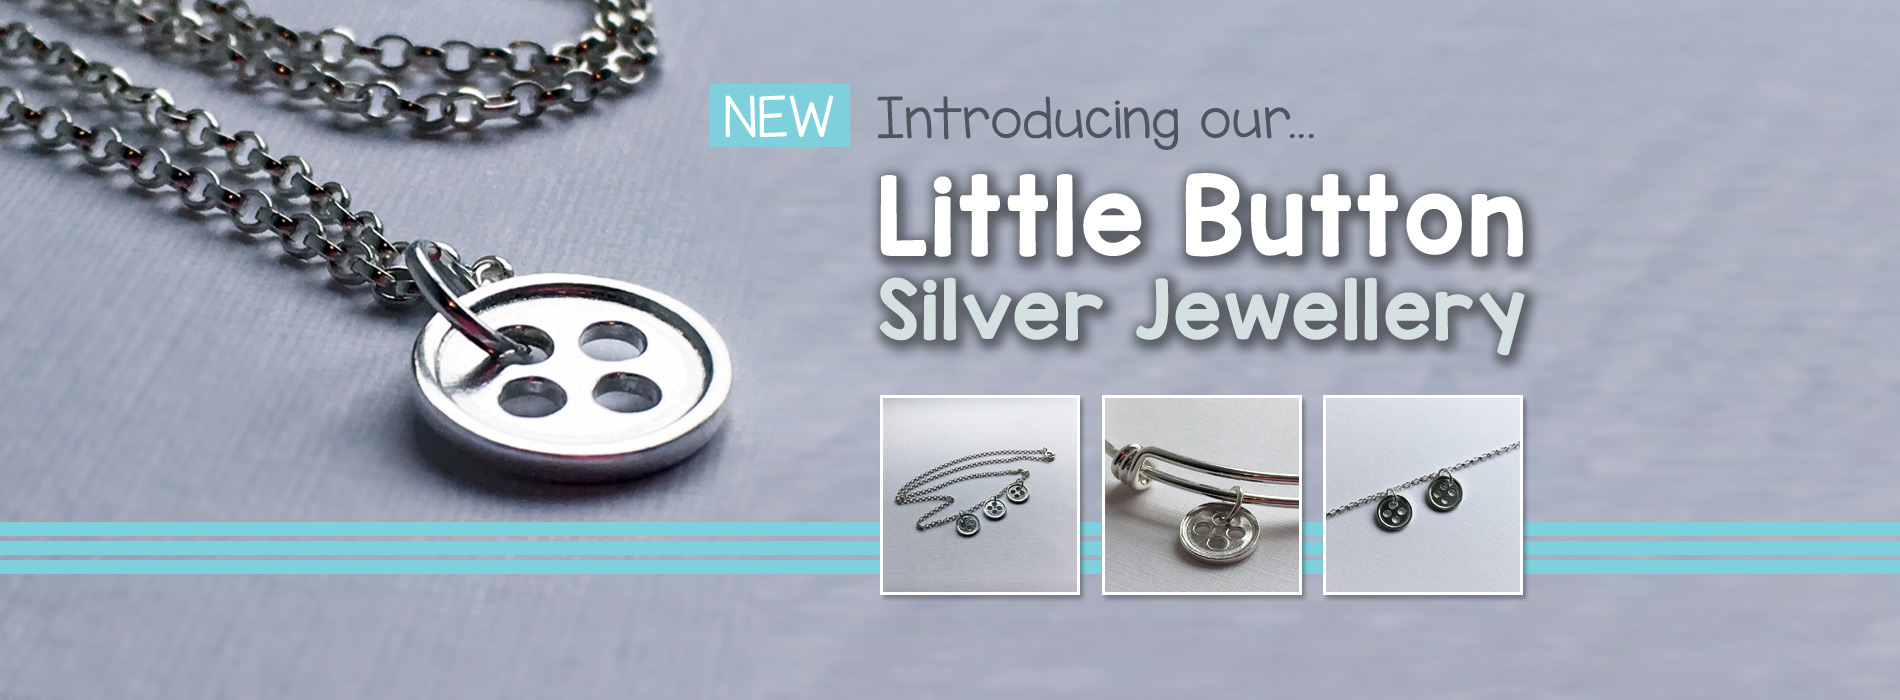 Introducing our Little Buttons Silver Jewellery